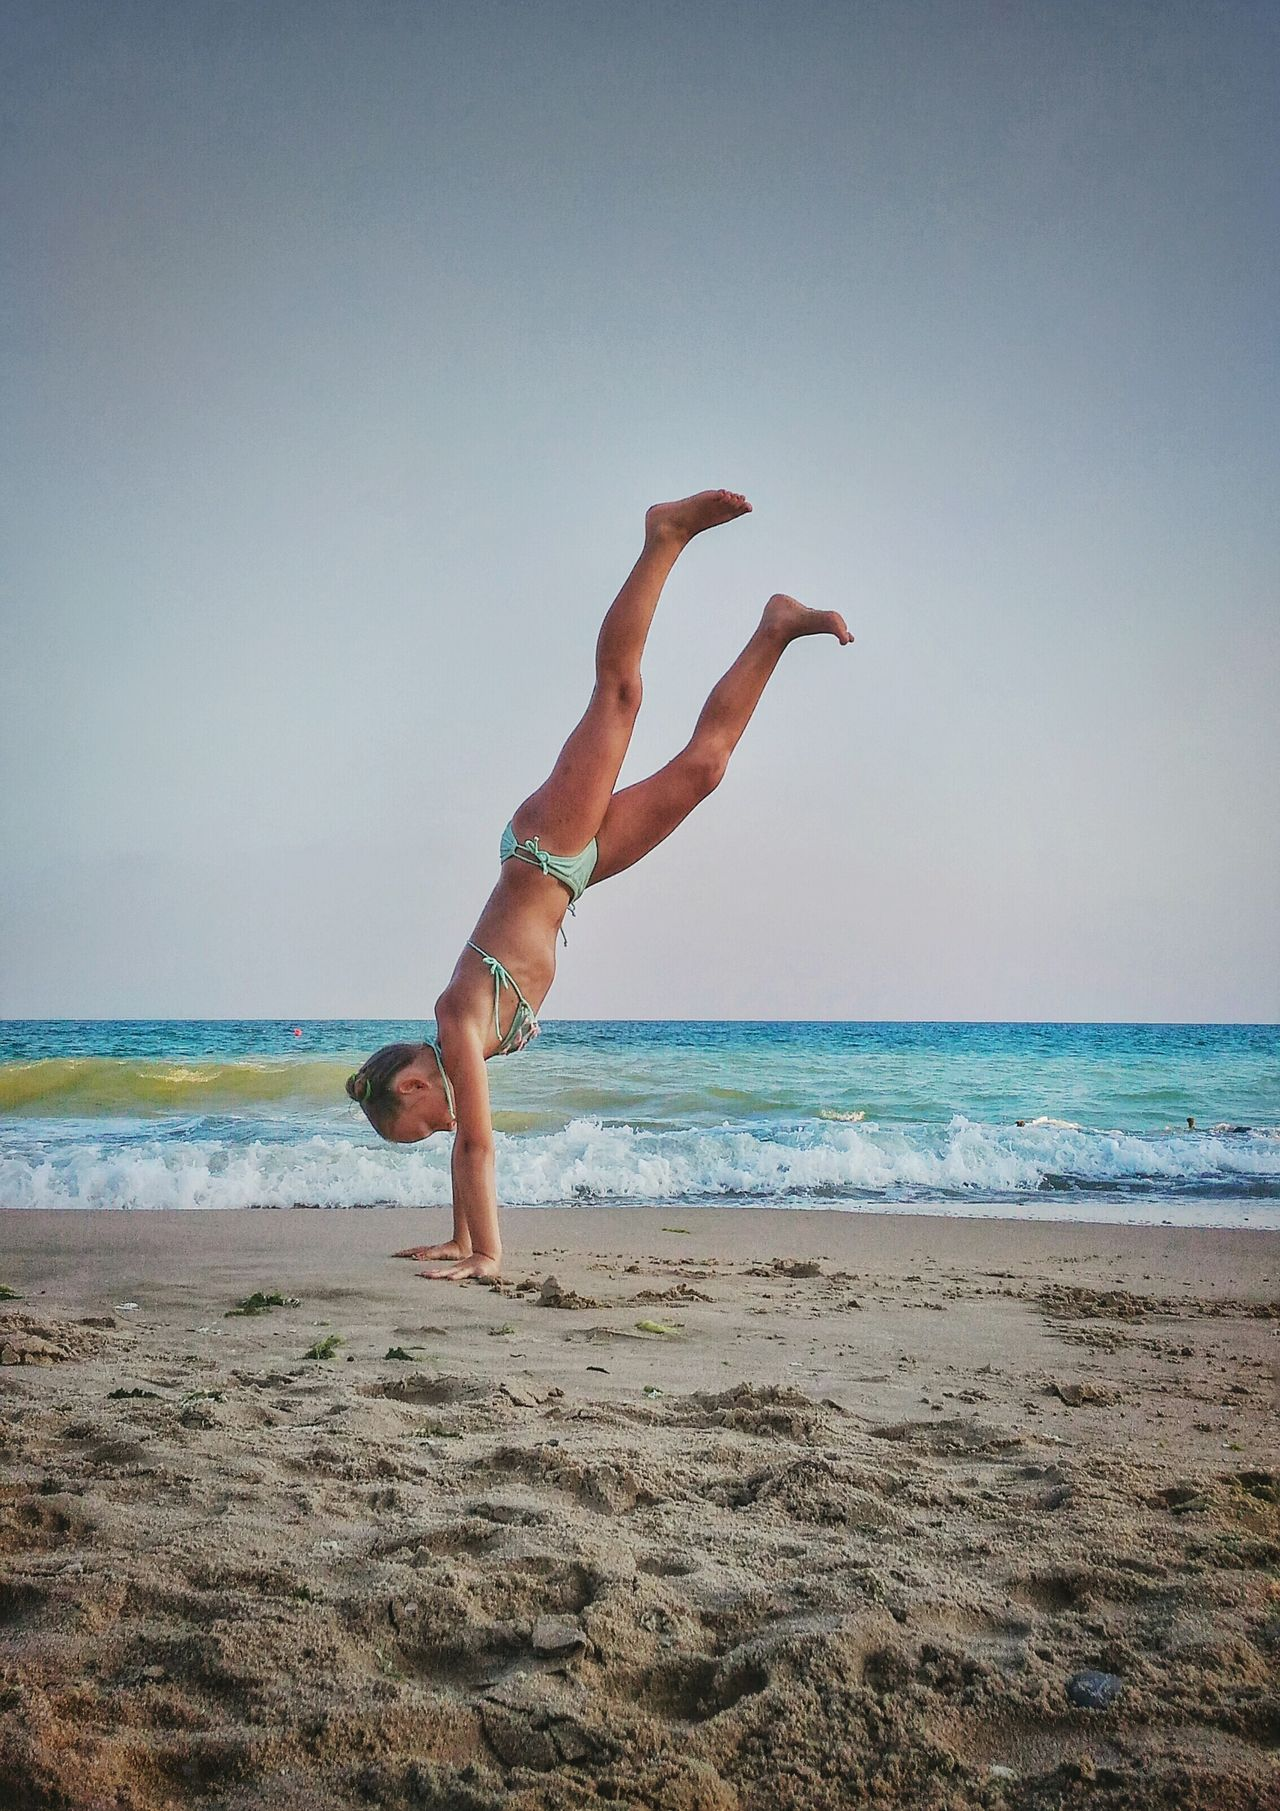 Sea And Sky Sea Beach Beachphotography Girl Gymnastics Seaside Summer Upside Down Upsidedown